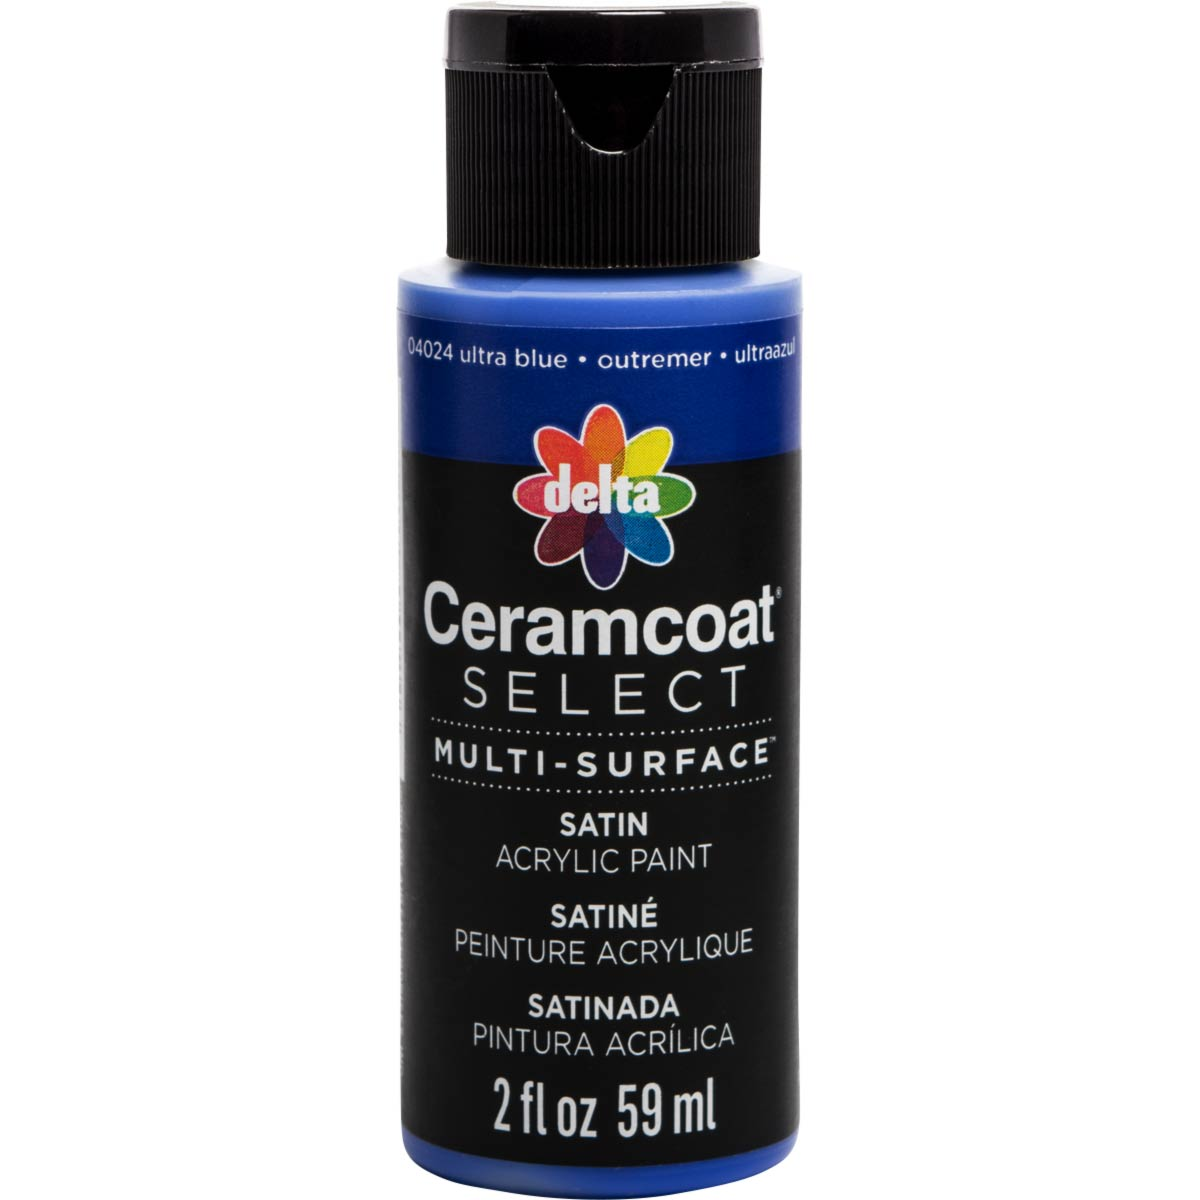 Delta Ceramcoat ® Select Multi-Surface Acrylic Paint - Satin - Ultra Bue, 2 oz. - 04024